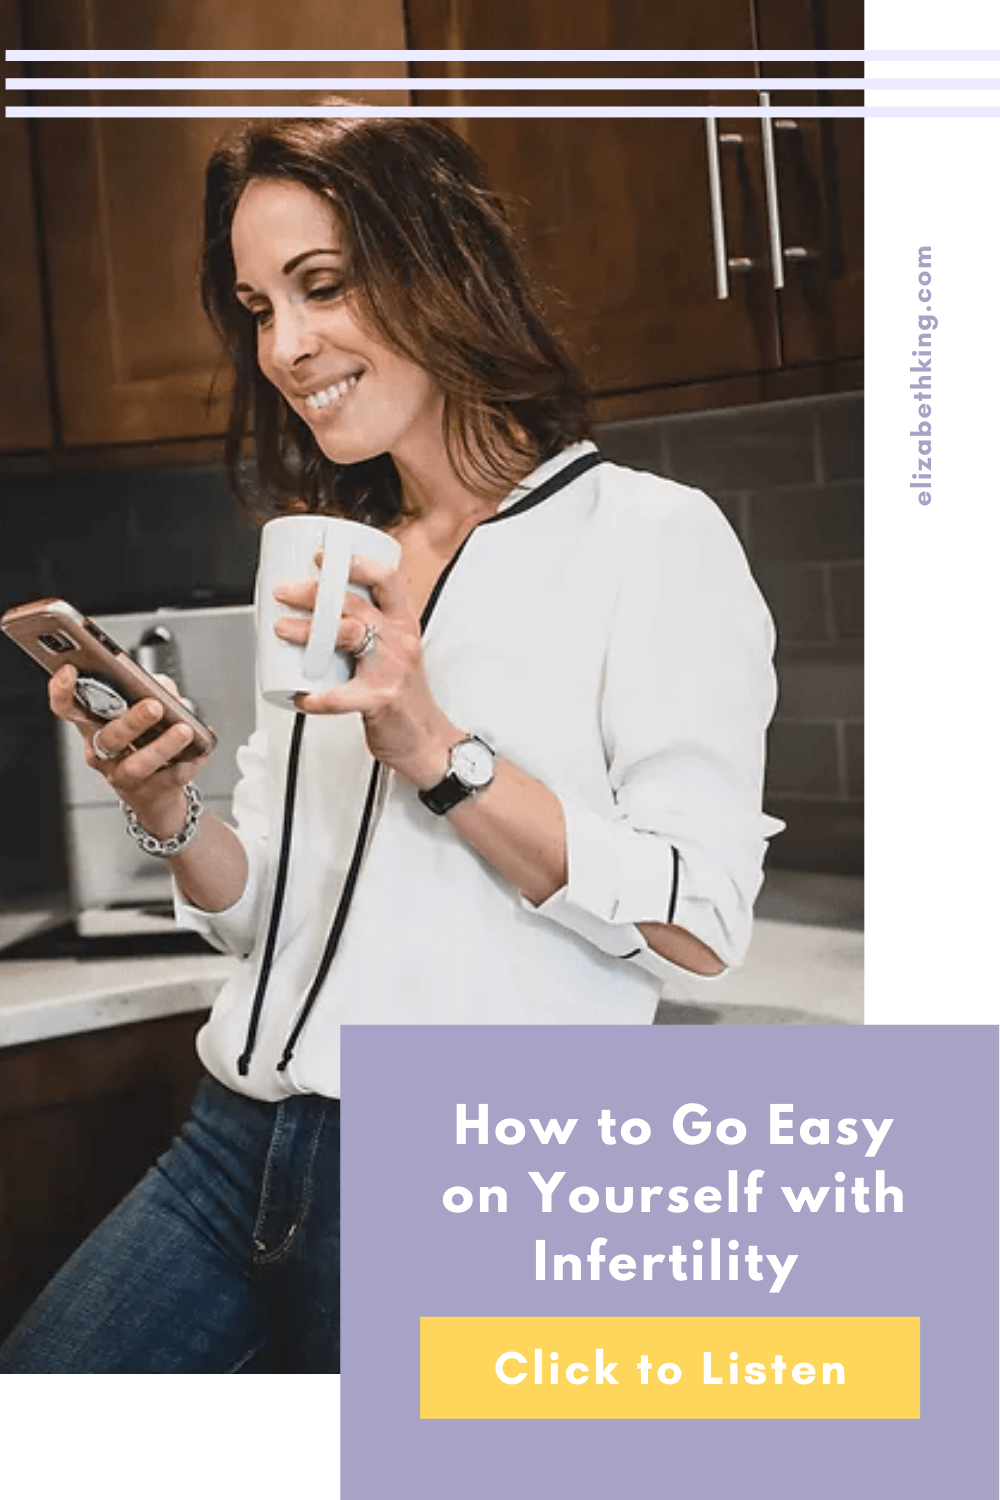 Learn how Tara Clark from @modernmomprobs learned how to go easy on herself while experiencing infertility.